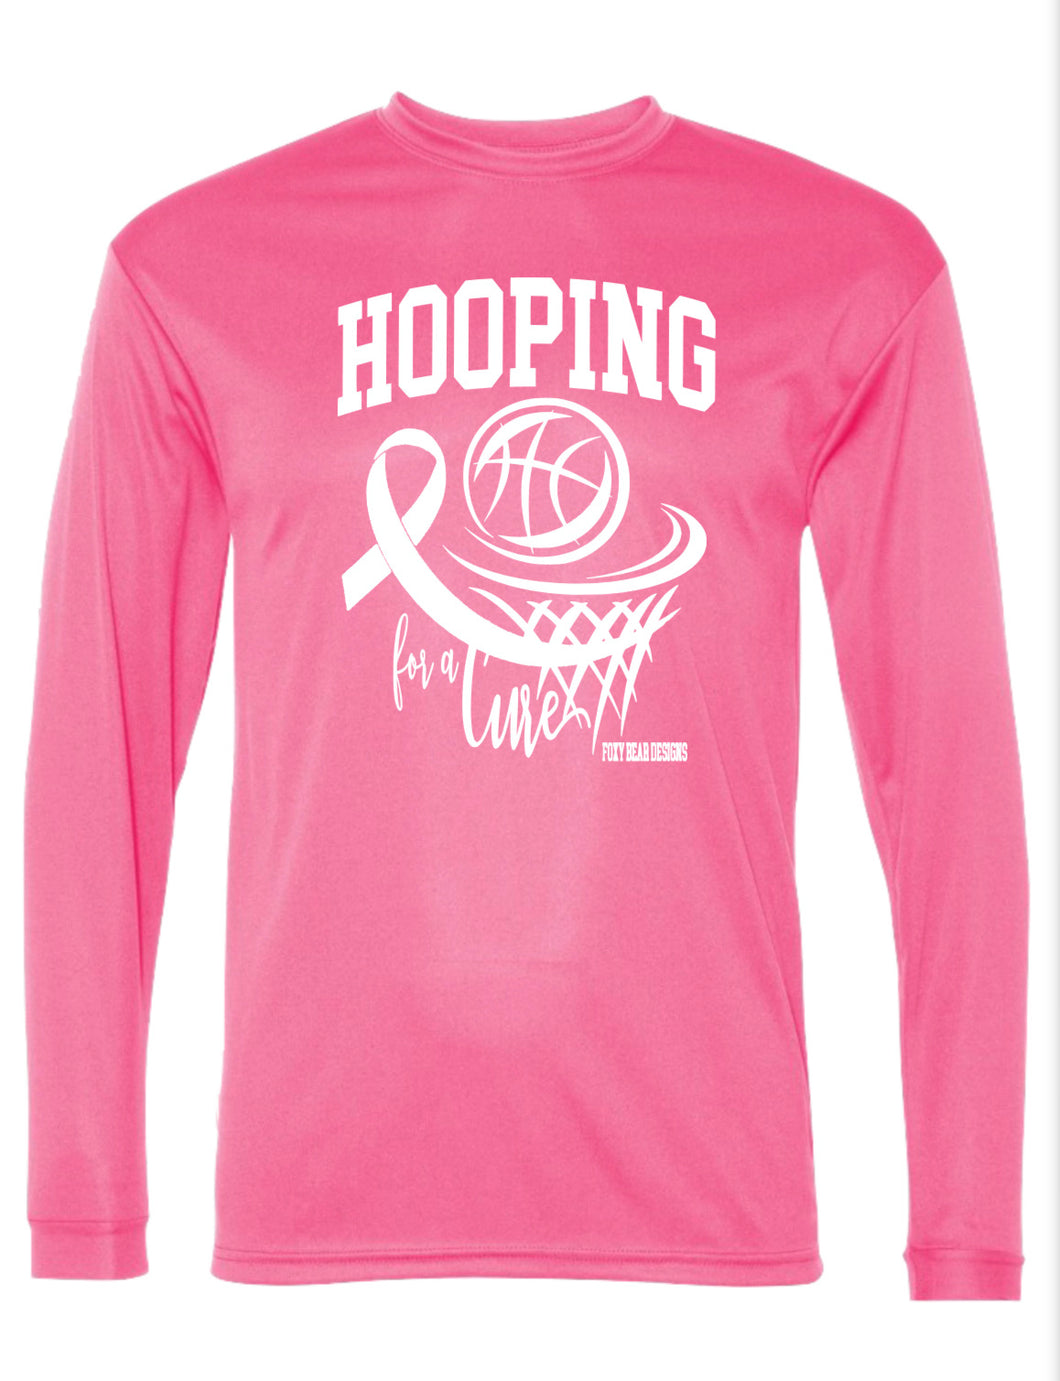 Hooping for a Cure Long Sleeve Shooting Shirt